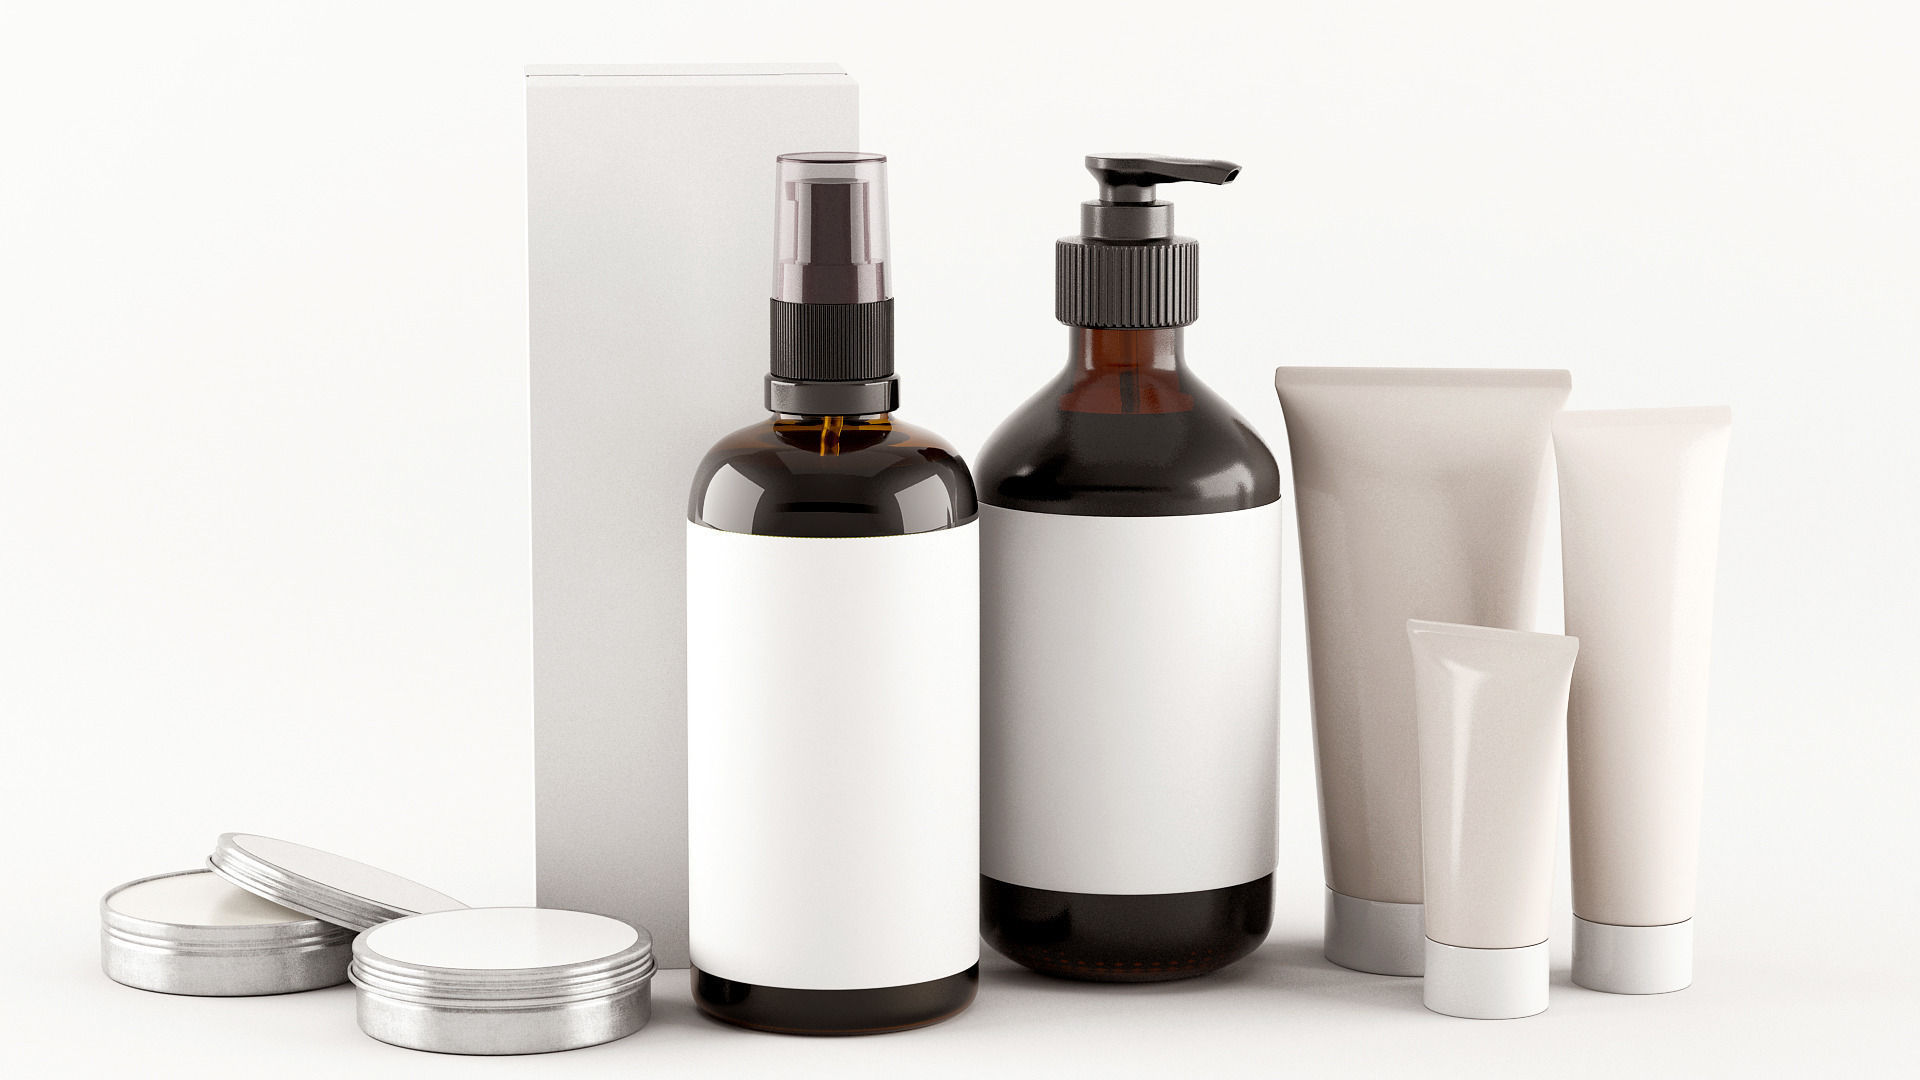 package for personal care